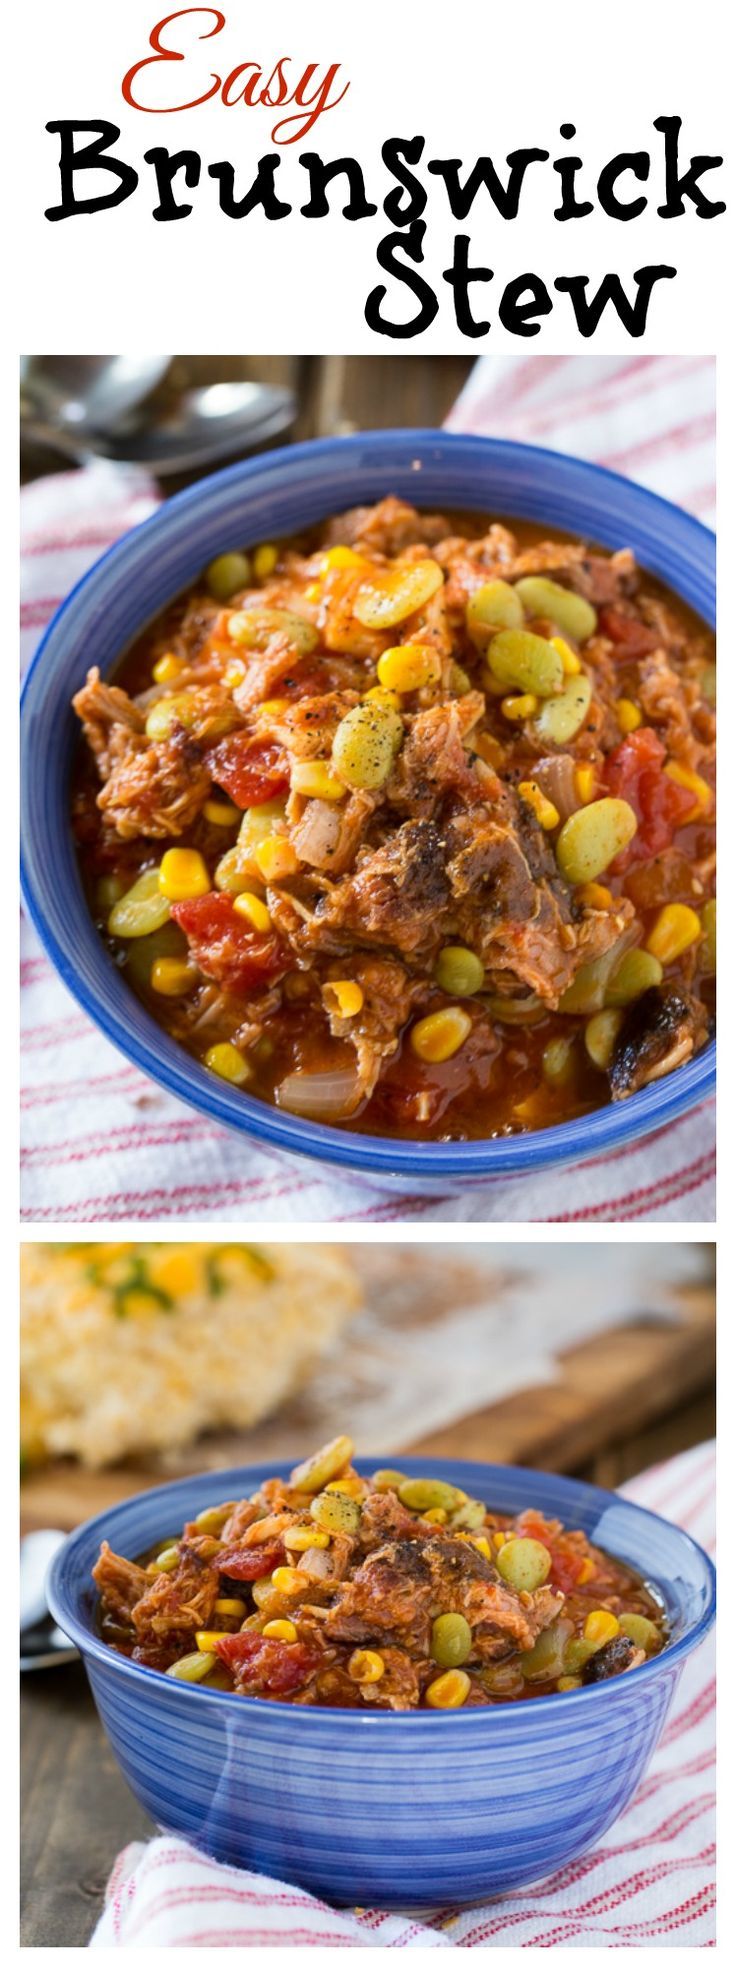 Easy Brunswick Stew with pulled pork and chicken. Can also use leftover Thanksgiving turkey. #southernfood #brunswickstew #recipes #chicken